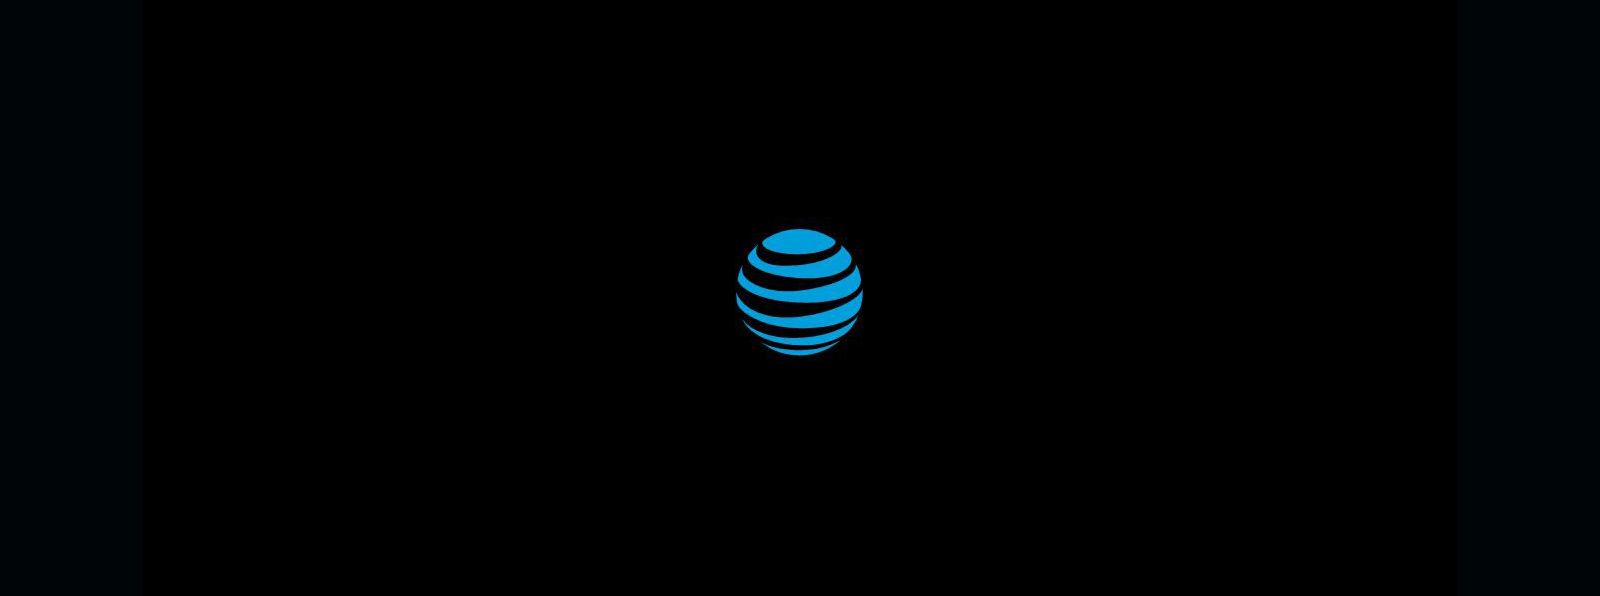 AT&T Provides Update on Strategy, Guidance for 2019